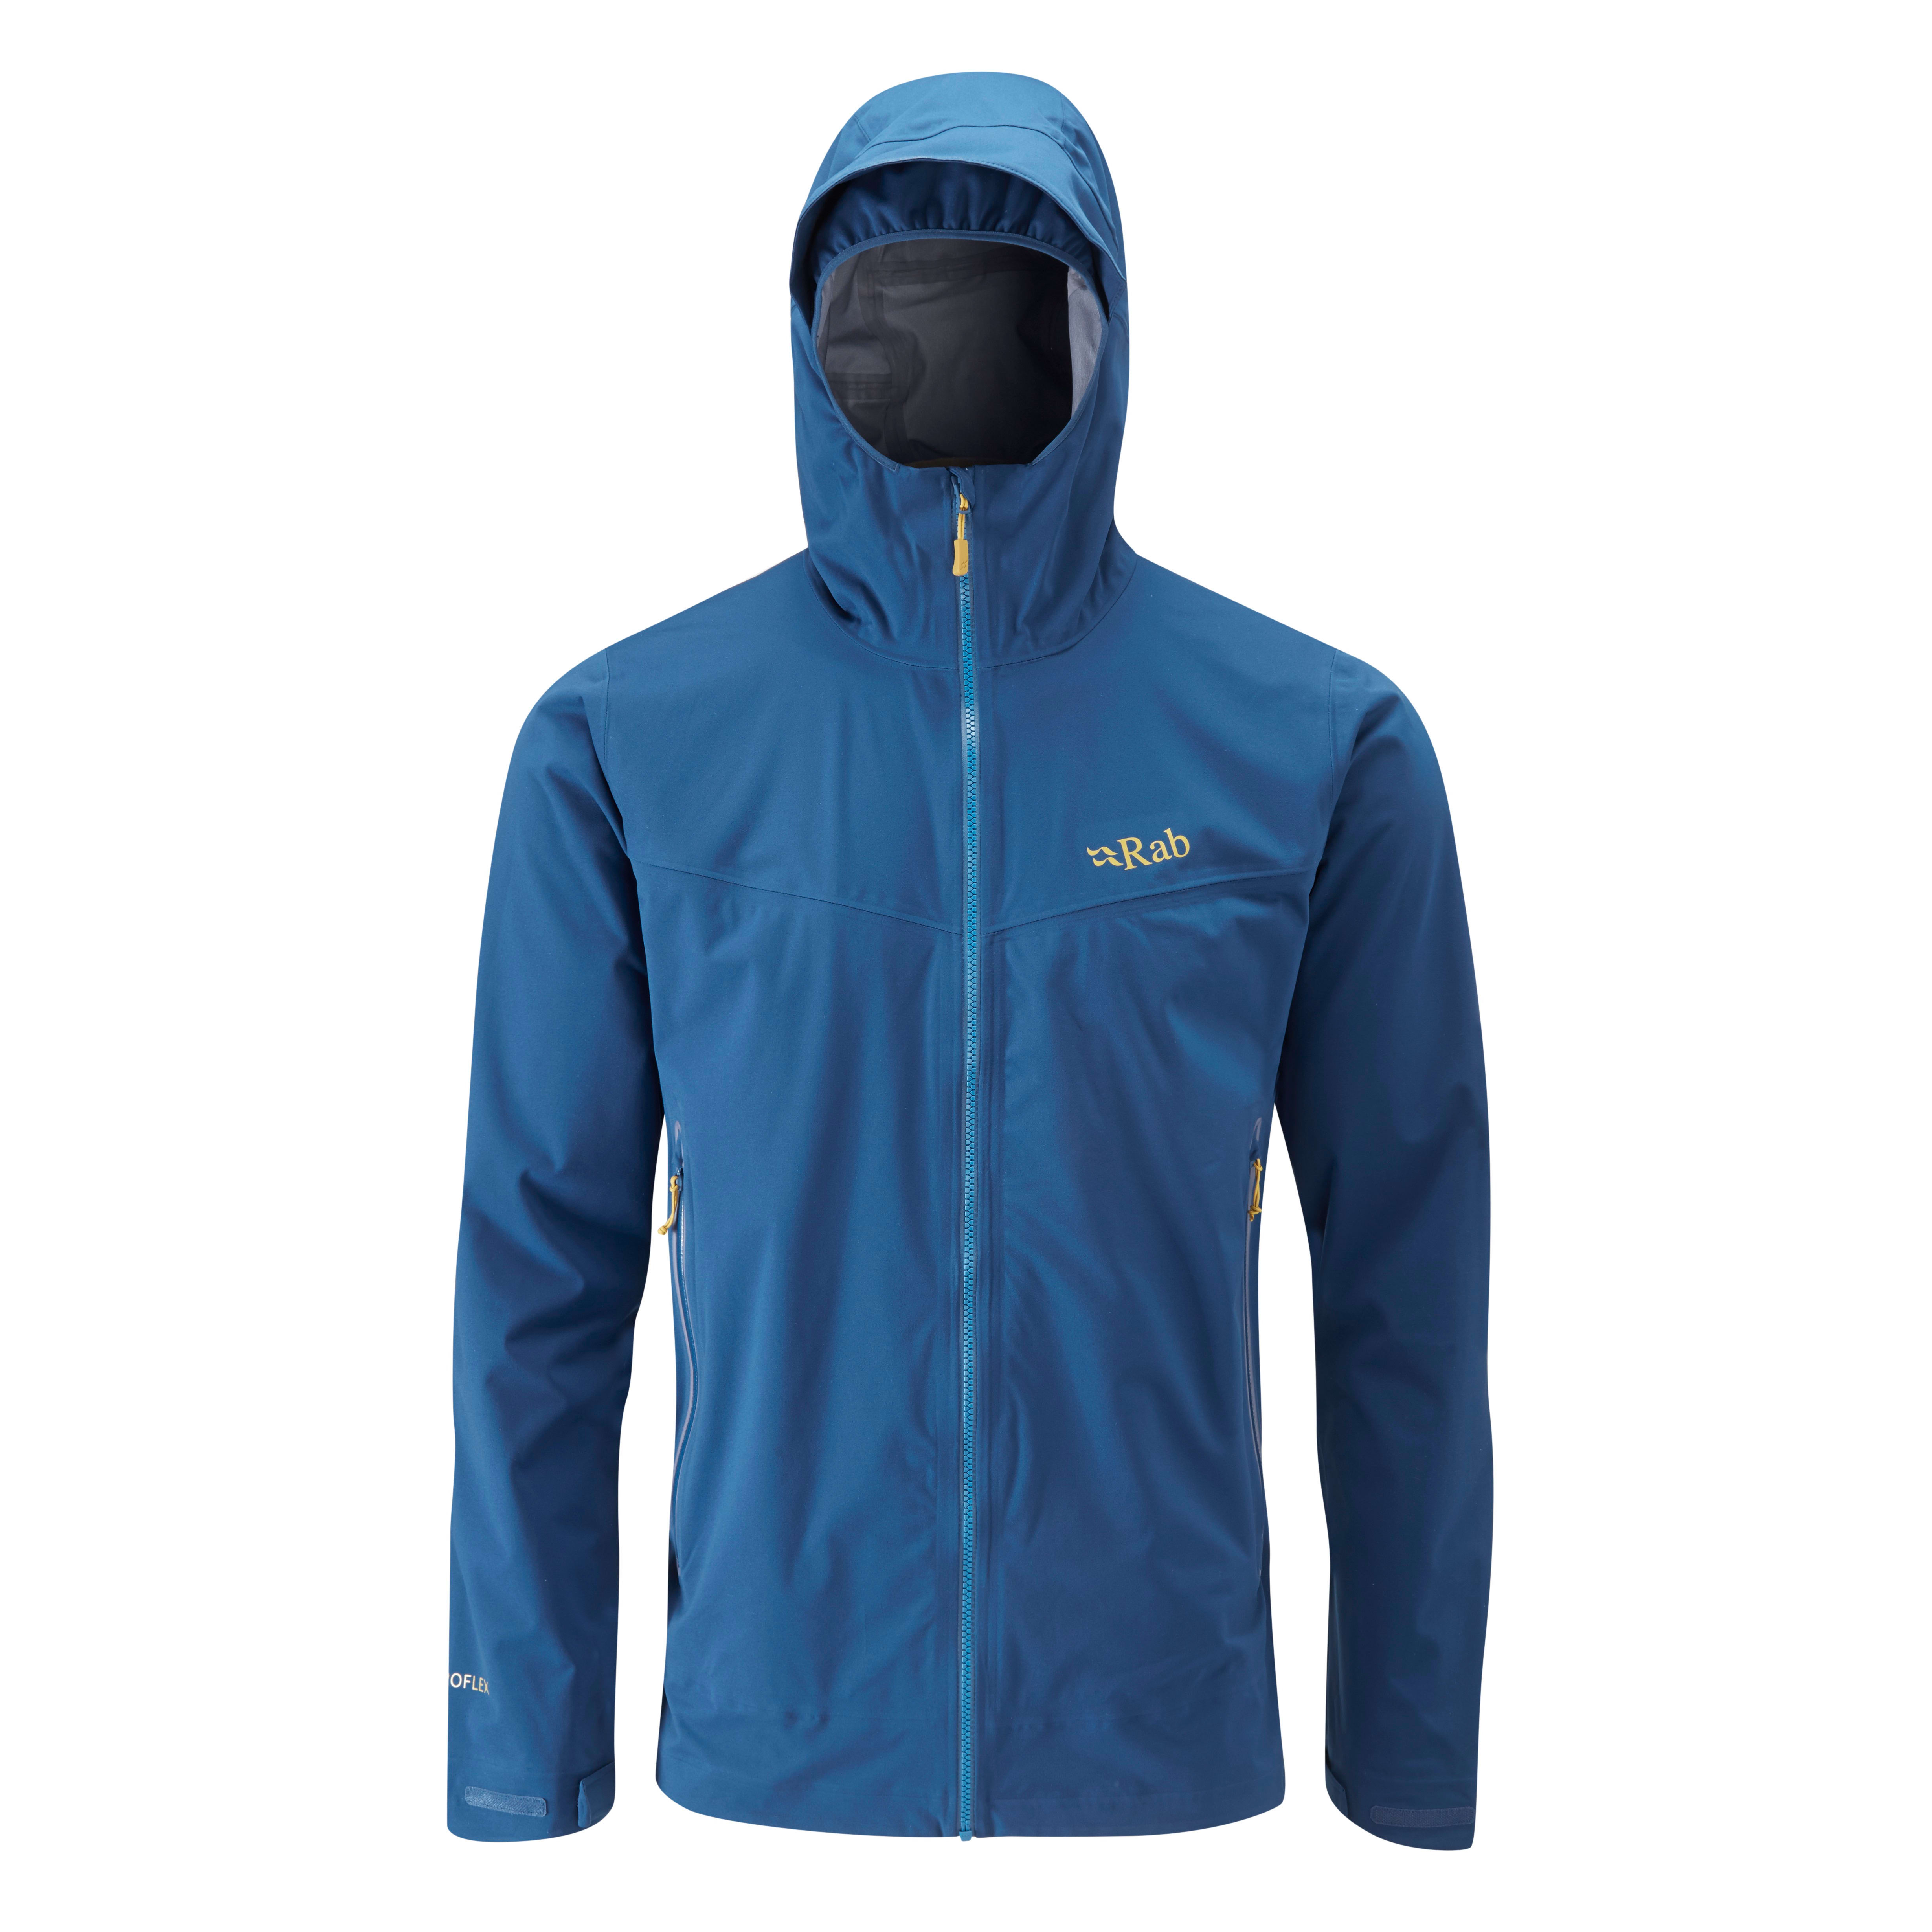 Kinetic Plus Jacket, Rab